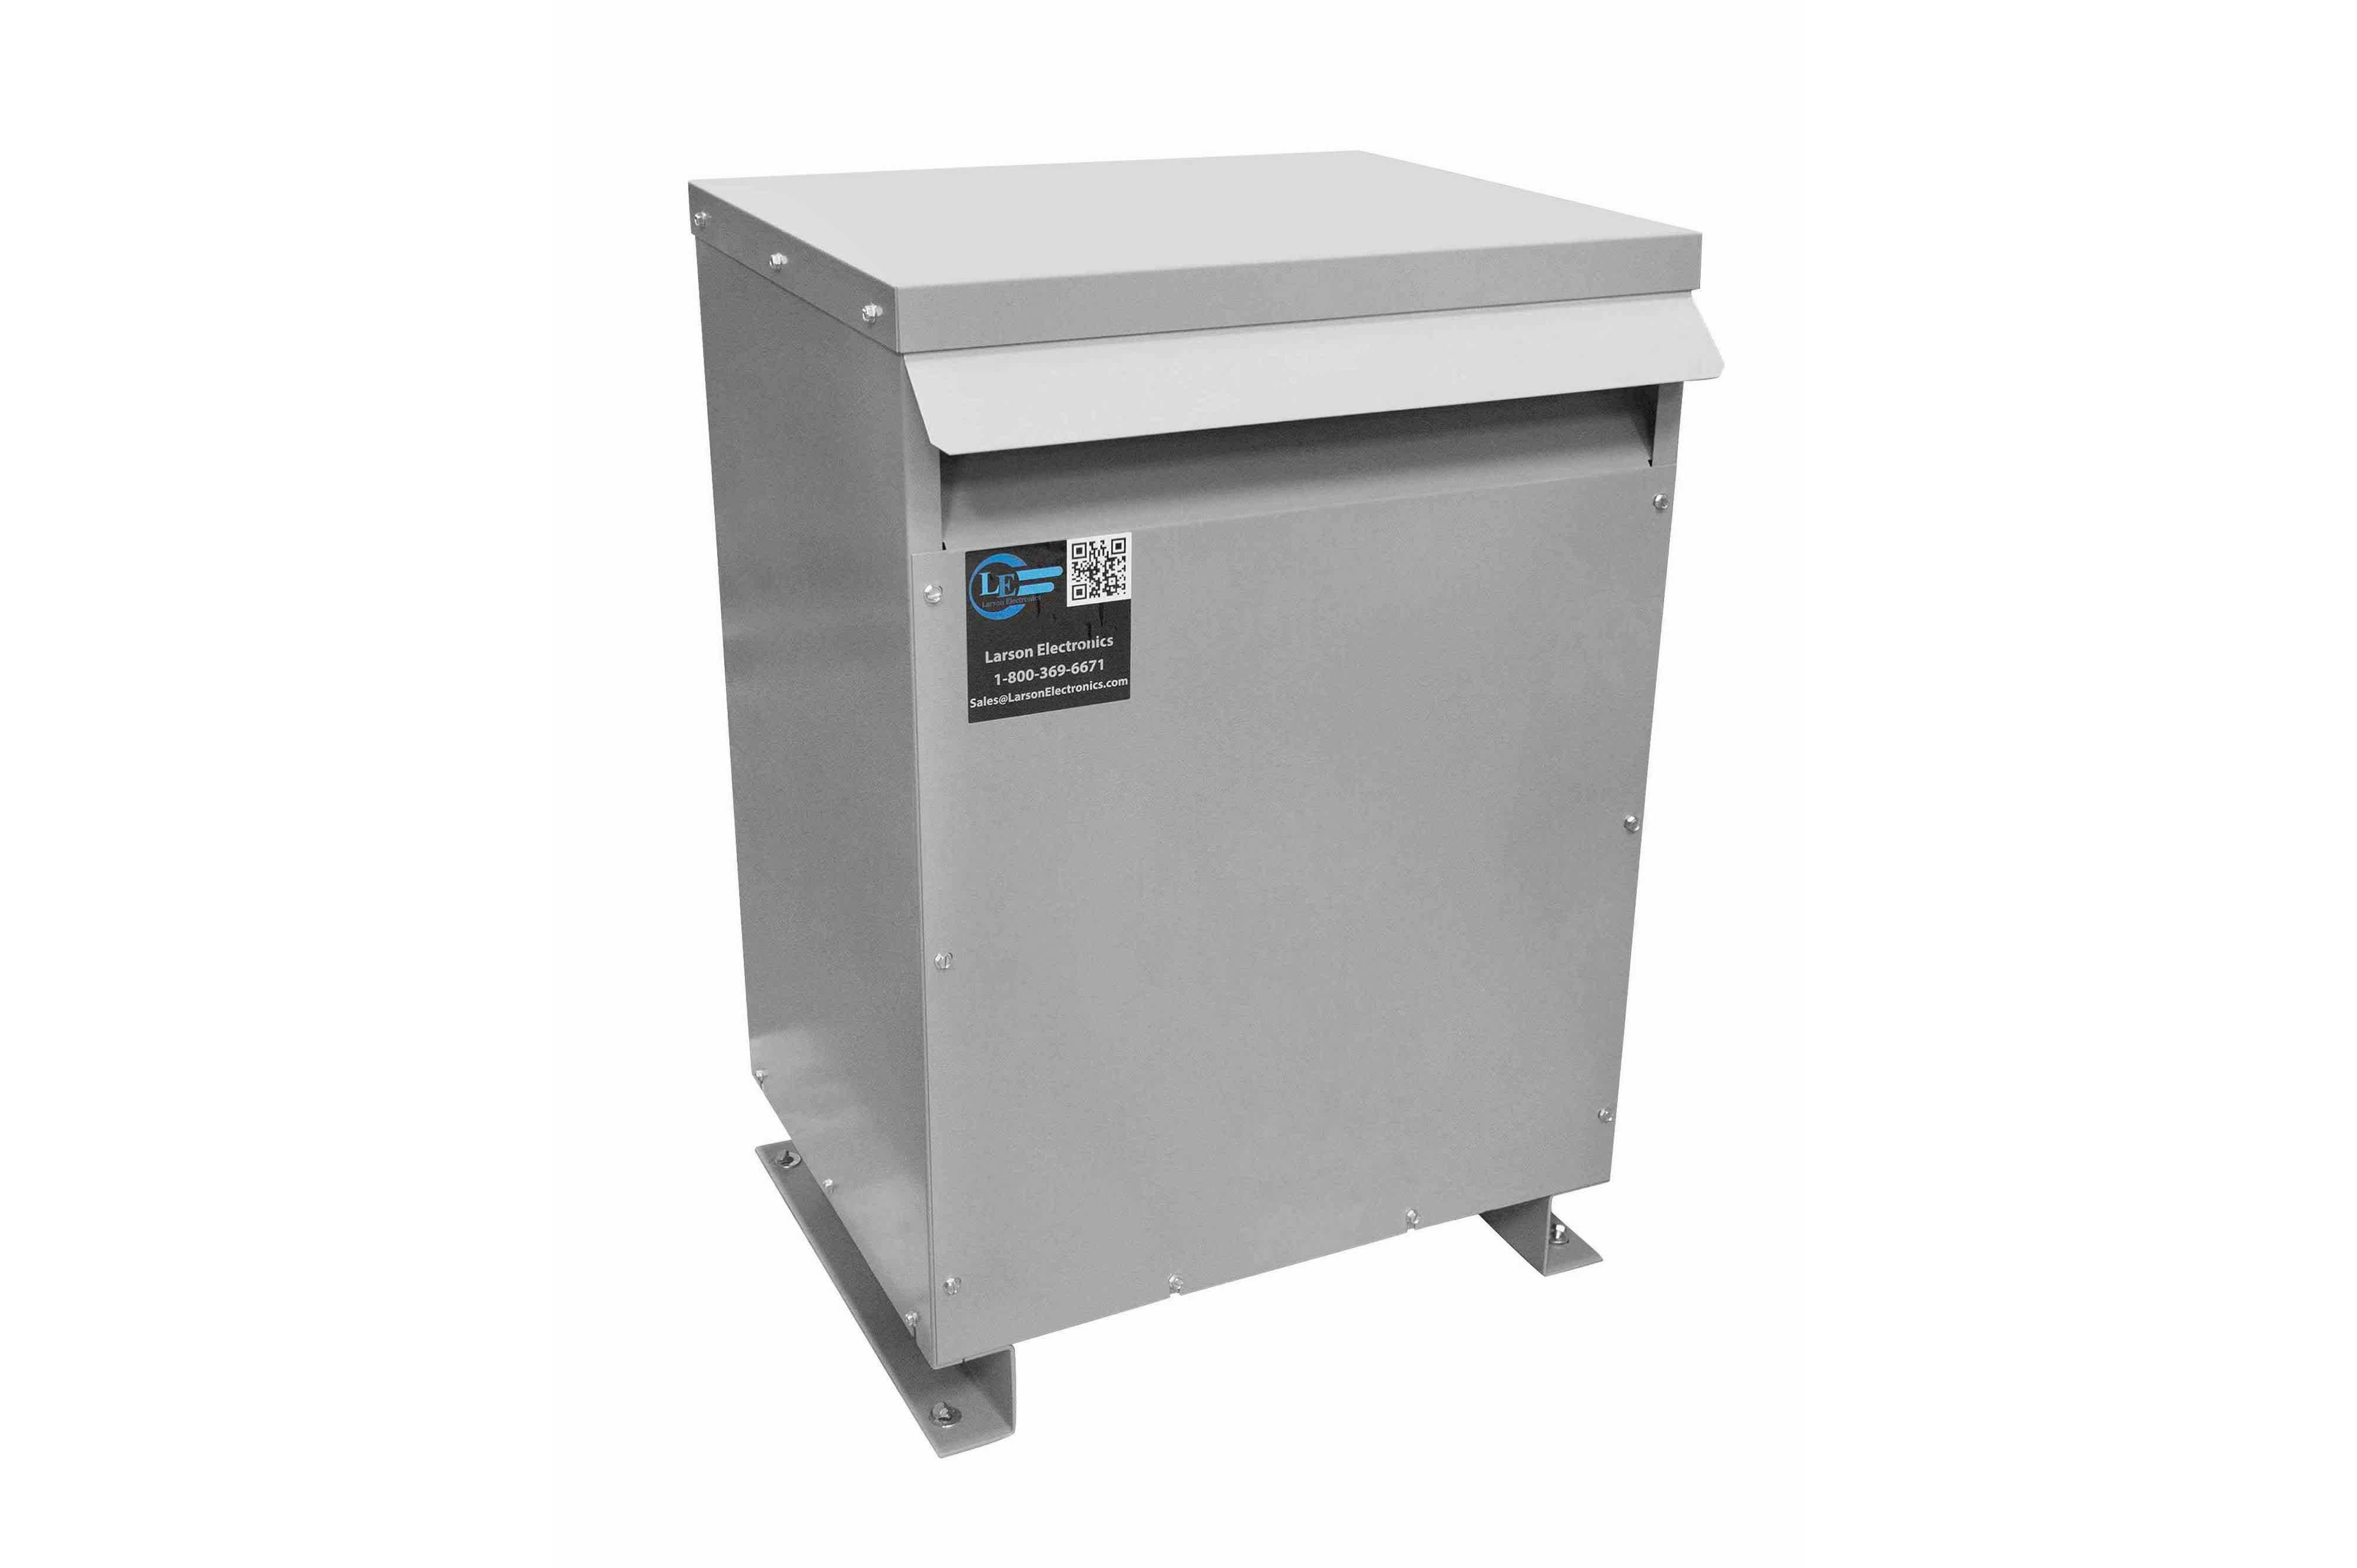 40 kVA 3PH Isolation Transformer, 600V Wye Primary, 415Y/240 Wye-N Secondary, N3R, Ventilated, 60 Hz